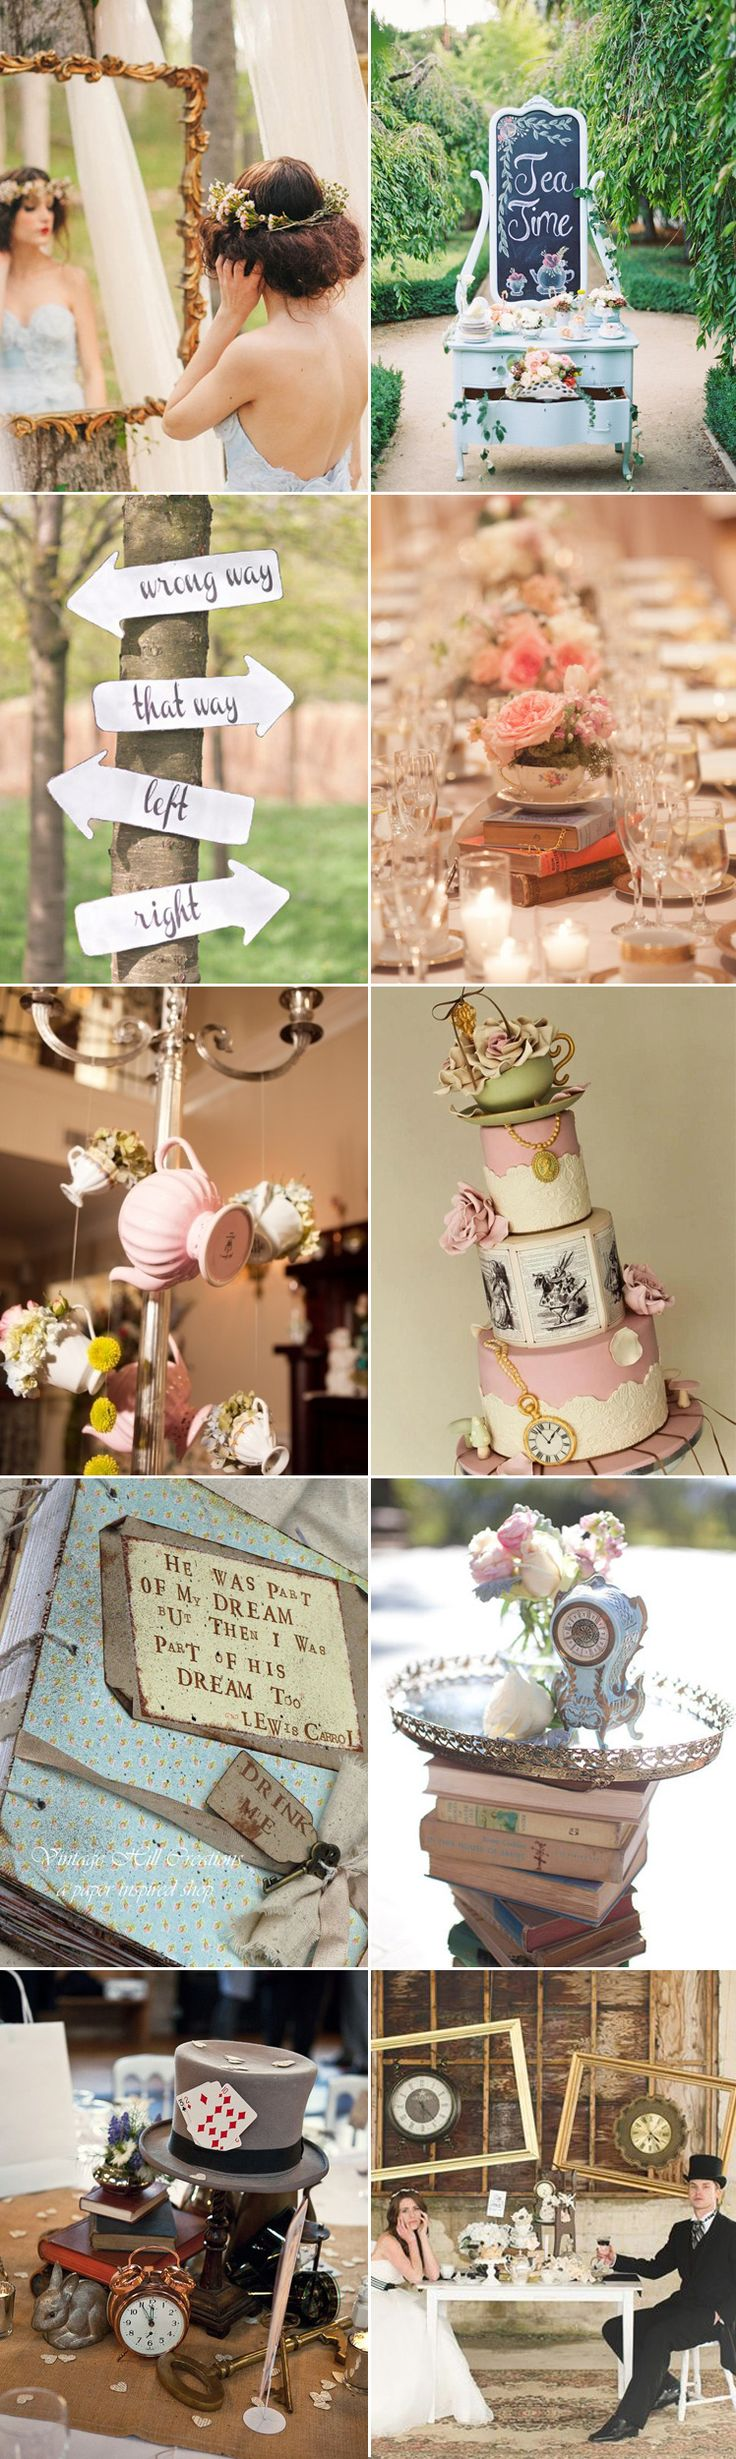 Lovely Buttercream Wedding Cakes Big Wedding Cake Topper Flat Wedding Cakes With Cupcakes Italian Wedding Cake Youthful Elegant Wedding Cakes YellowAverage Wedding Cake Cost 25  Best Alice In Wonderland Wedding Ideas On Pinterest | Alice In ..